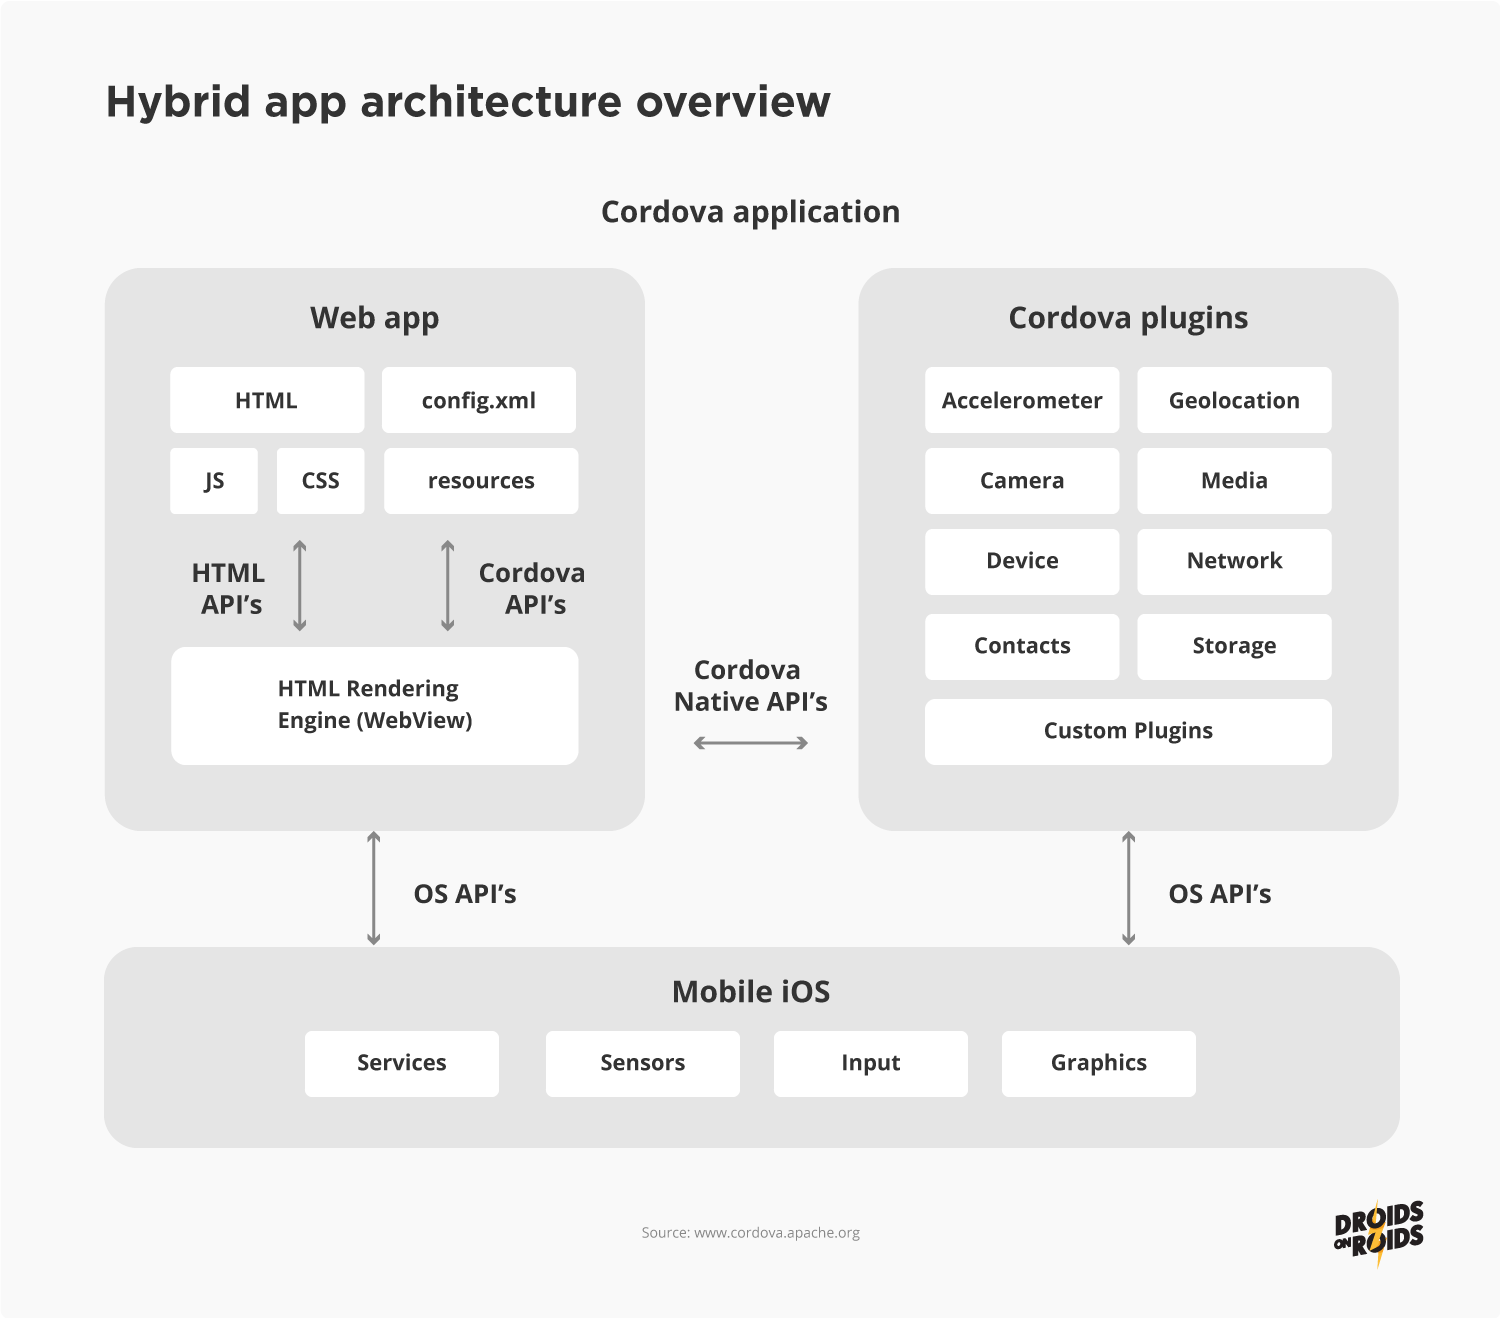 The architecture of a hybrid app